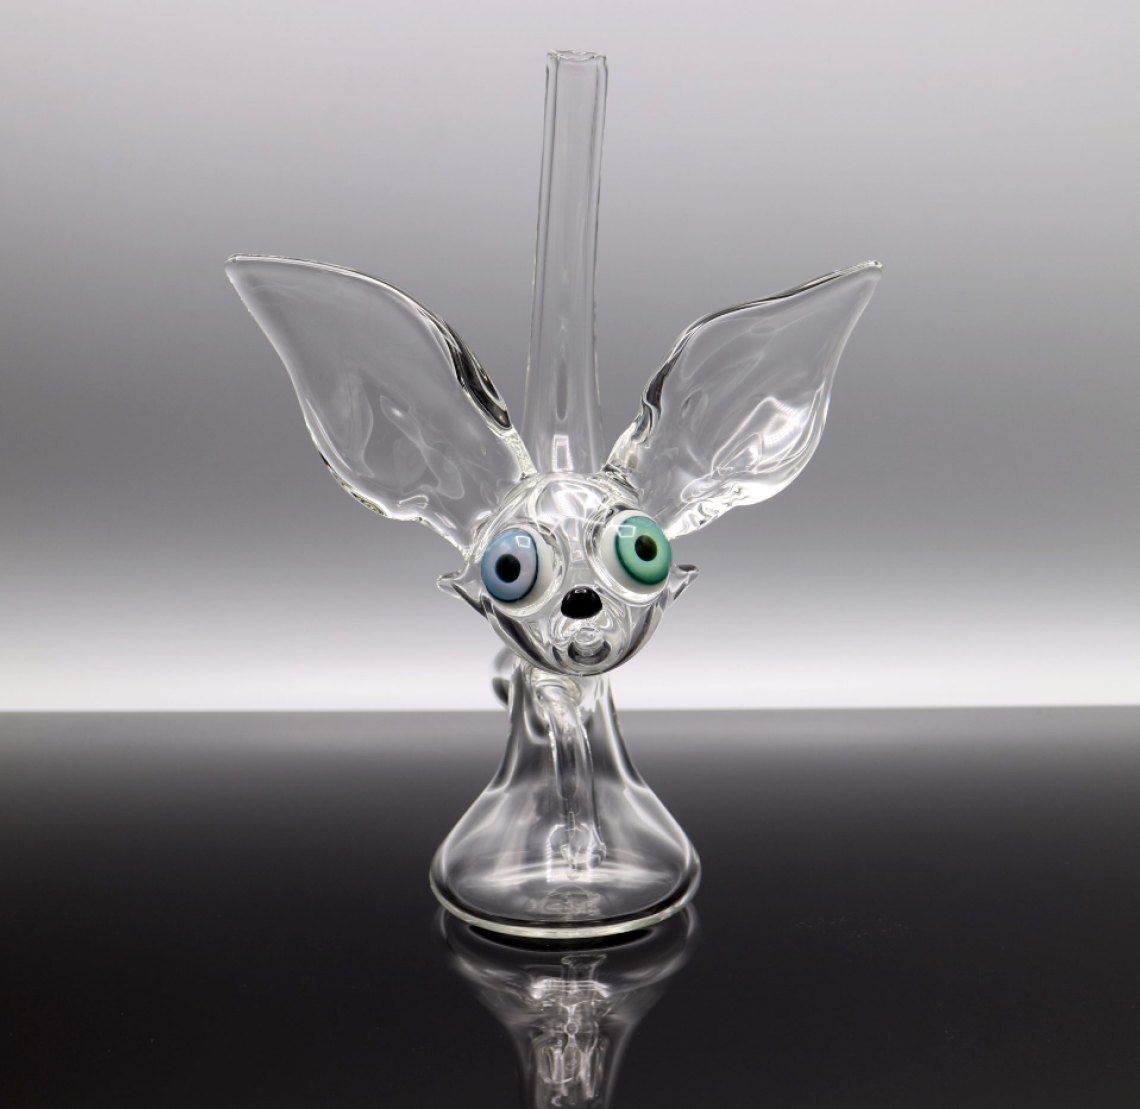 Tymeone – Blue and Green Eye Clear Fox Jammer